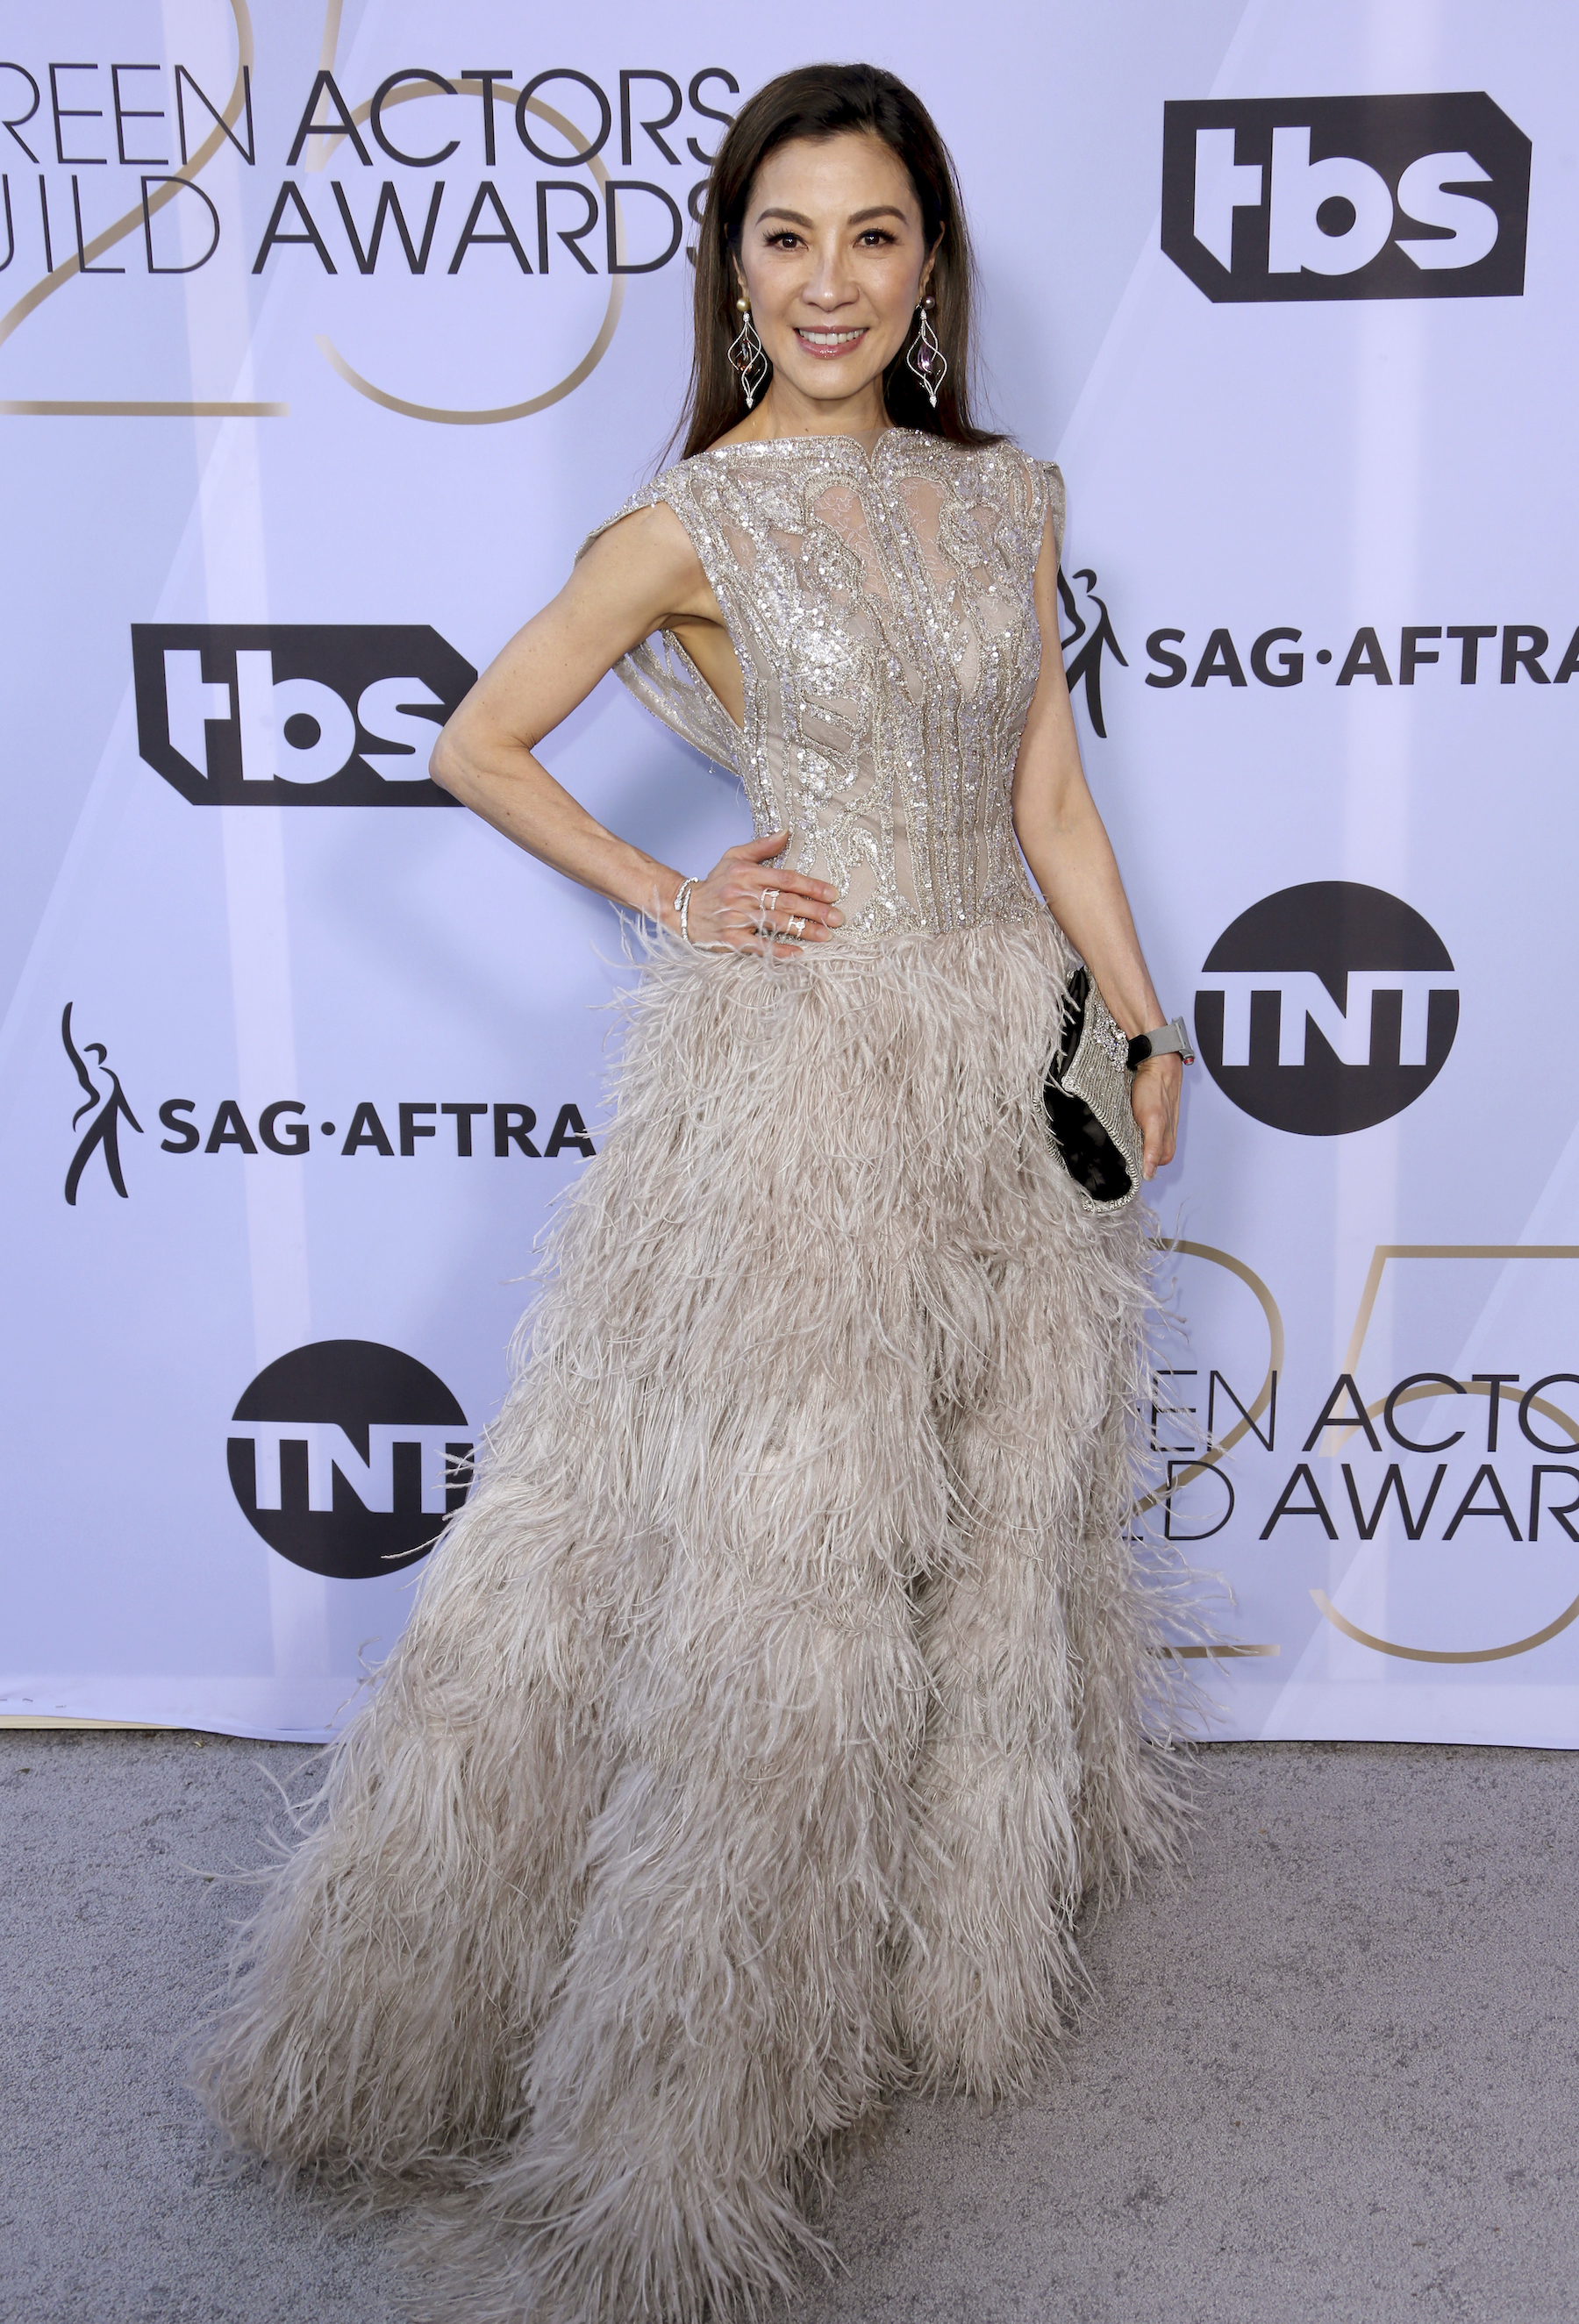 <div class='meta'><div class='origin-logo' data-origin='AP'></div><span class='caption-text' data-credit='Willy Sanjuan/Invision/AP'>Michelle Yeoh arrives at the 25th annual Screen Actors Guild Awards at the Shrine Auditorium & Expo Hall on Sunday, Jan. 27, 2019, in Los Angeles.</span></div>